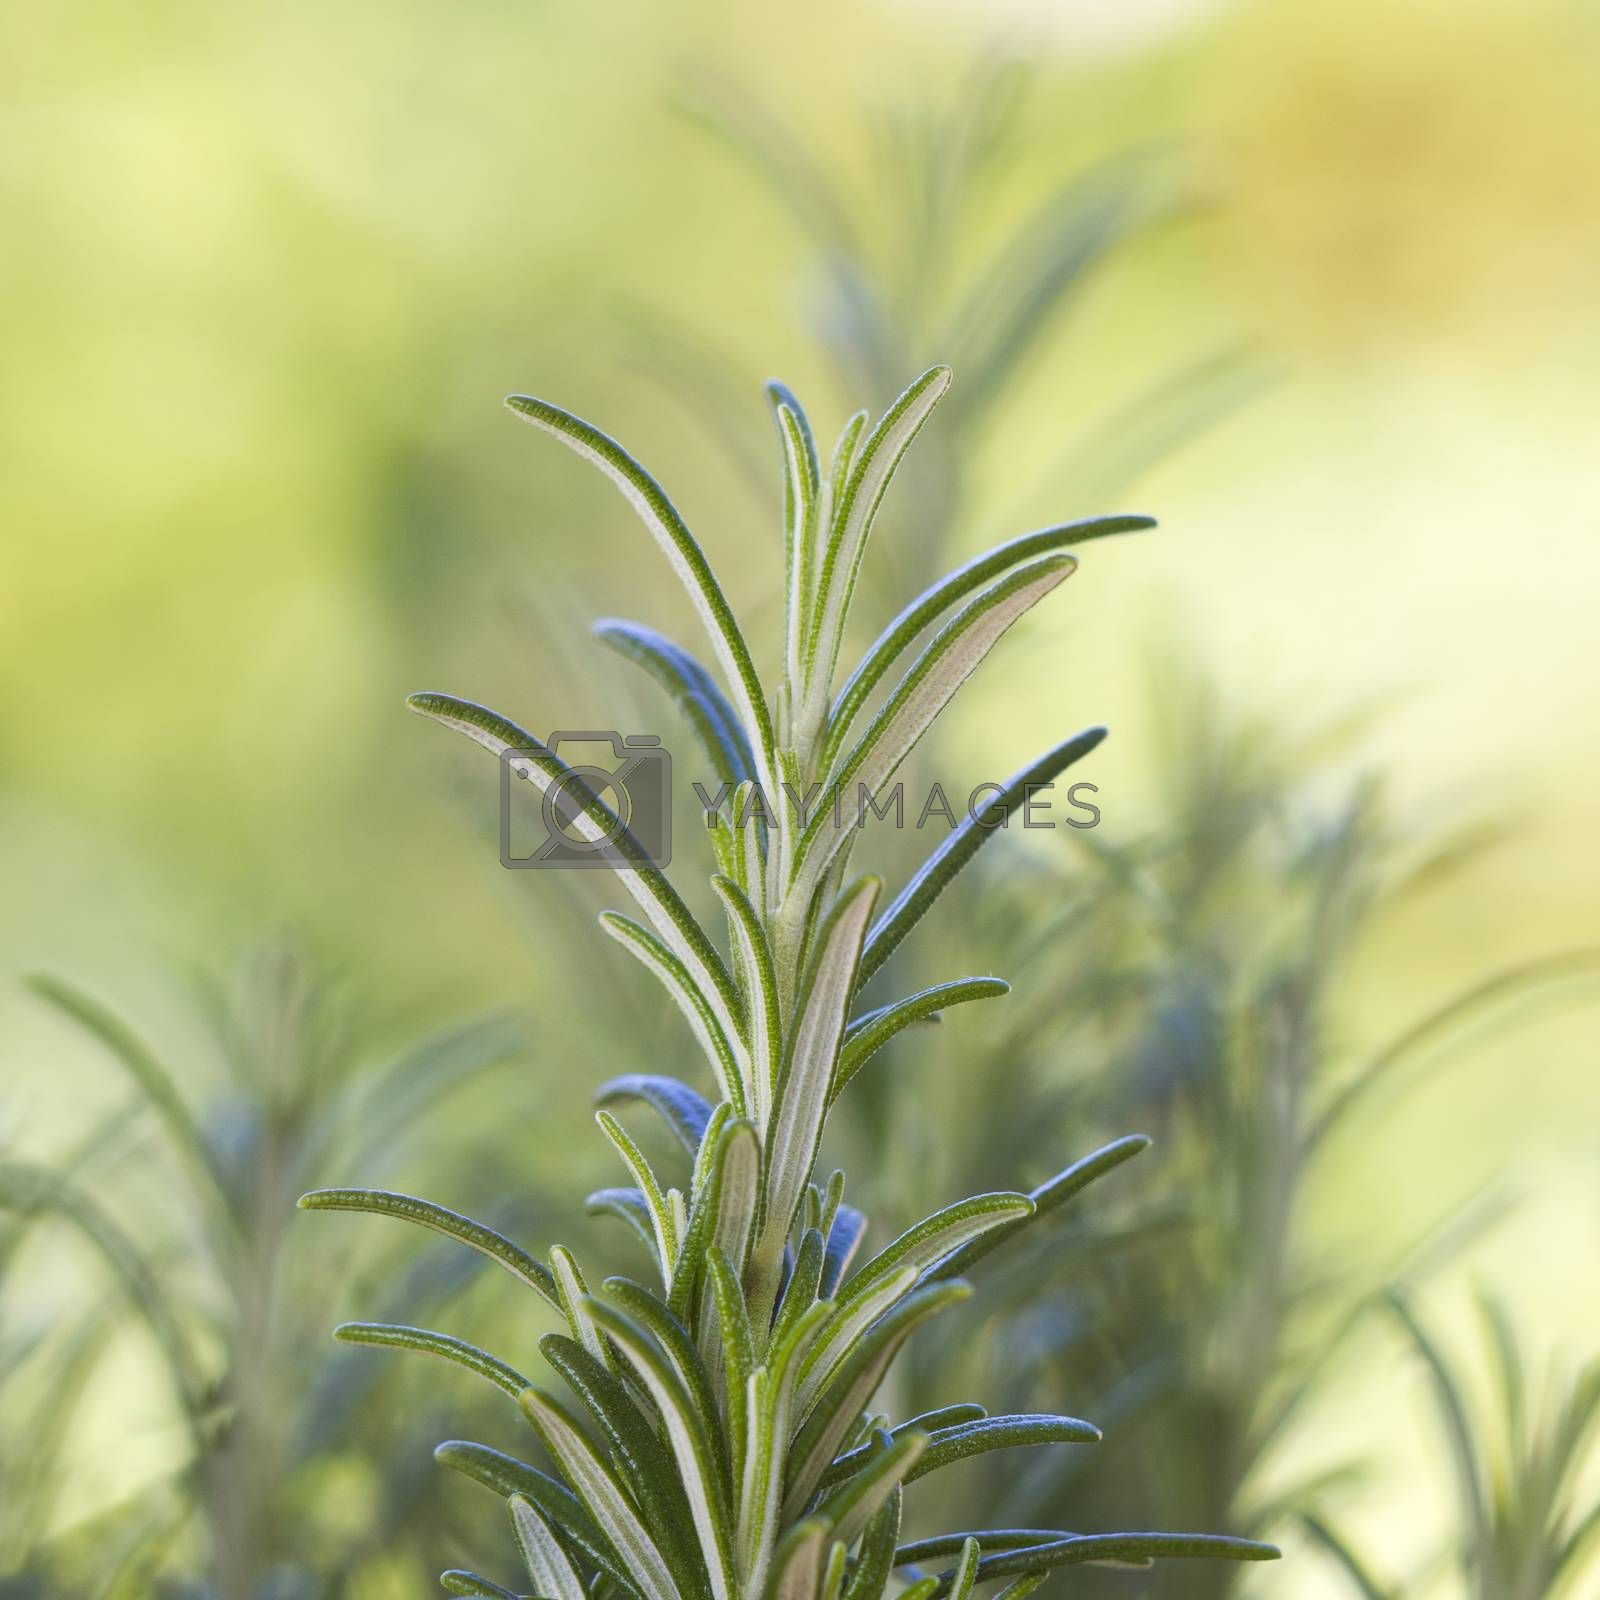 fresh rosemary in the garden (rosmarinus officinalis)